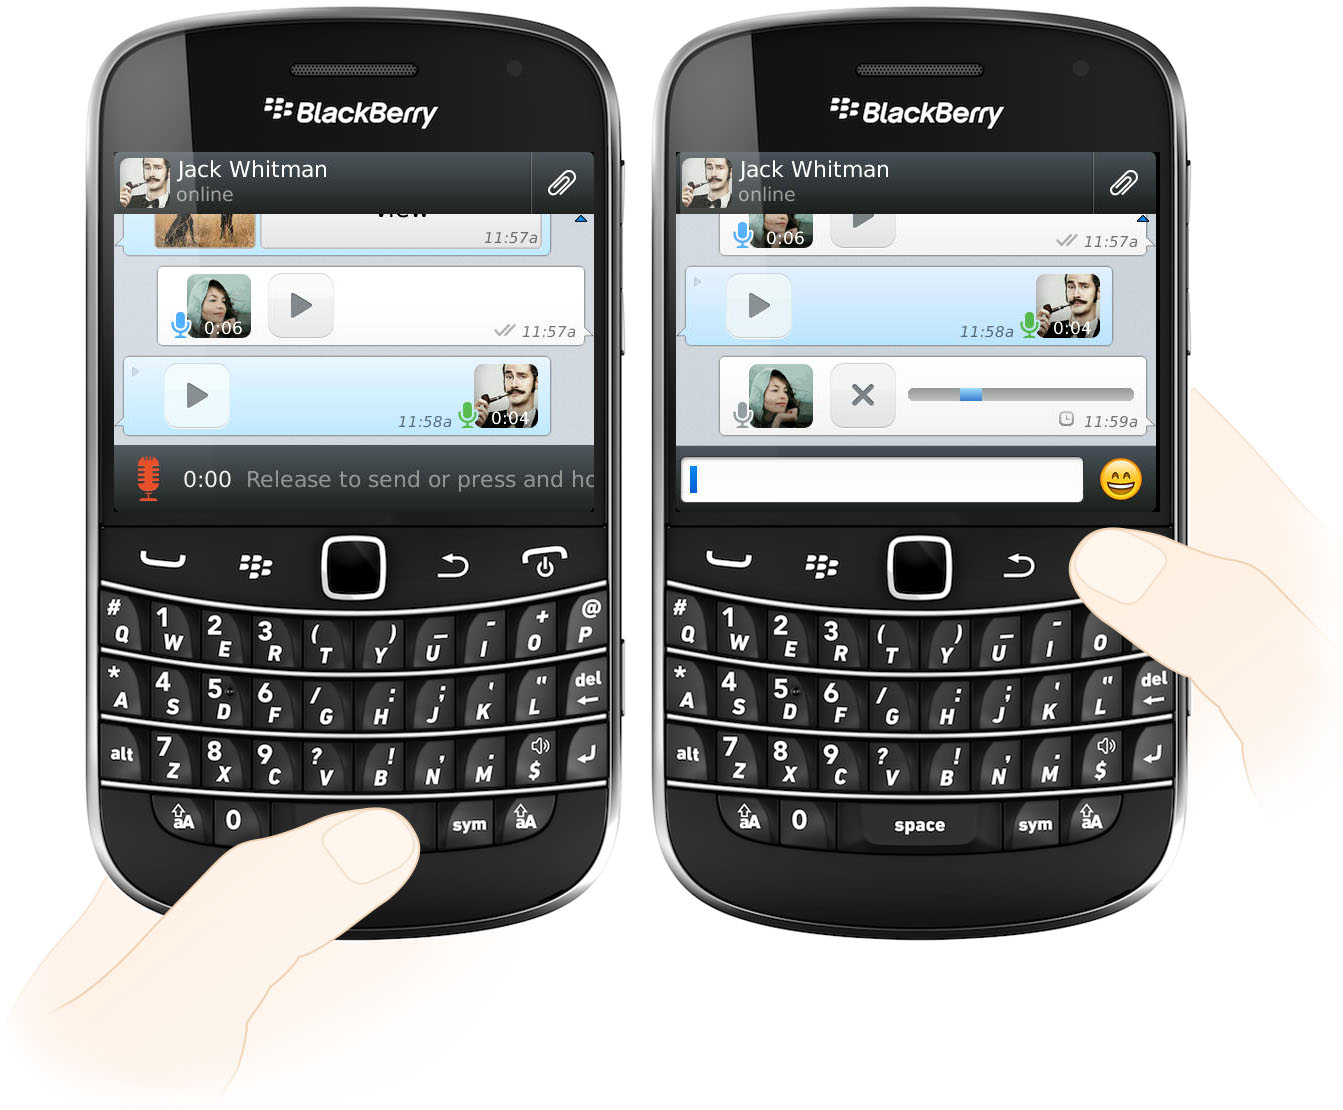 whatsapp-voice-message-blackberry